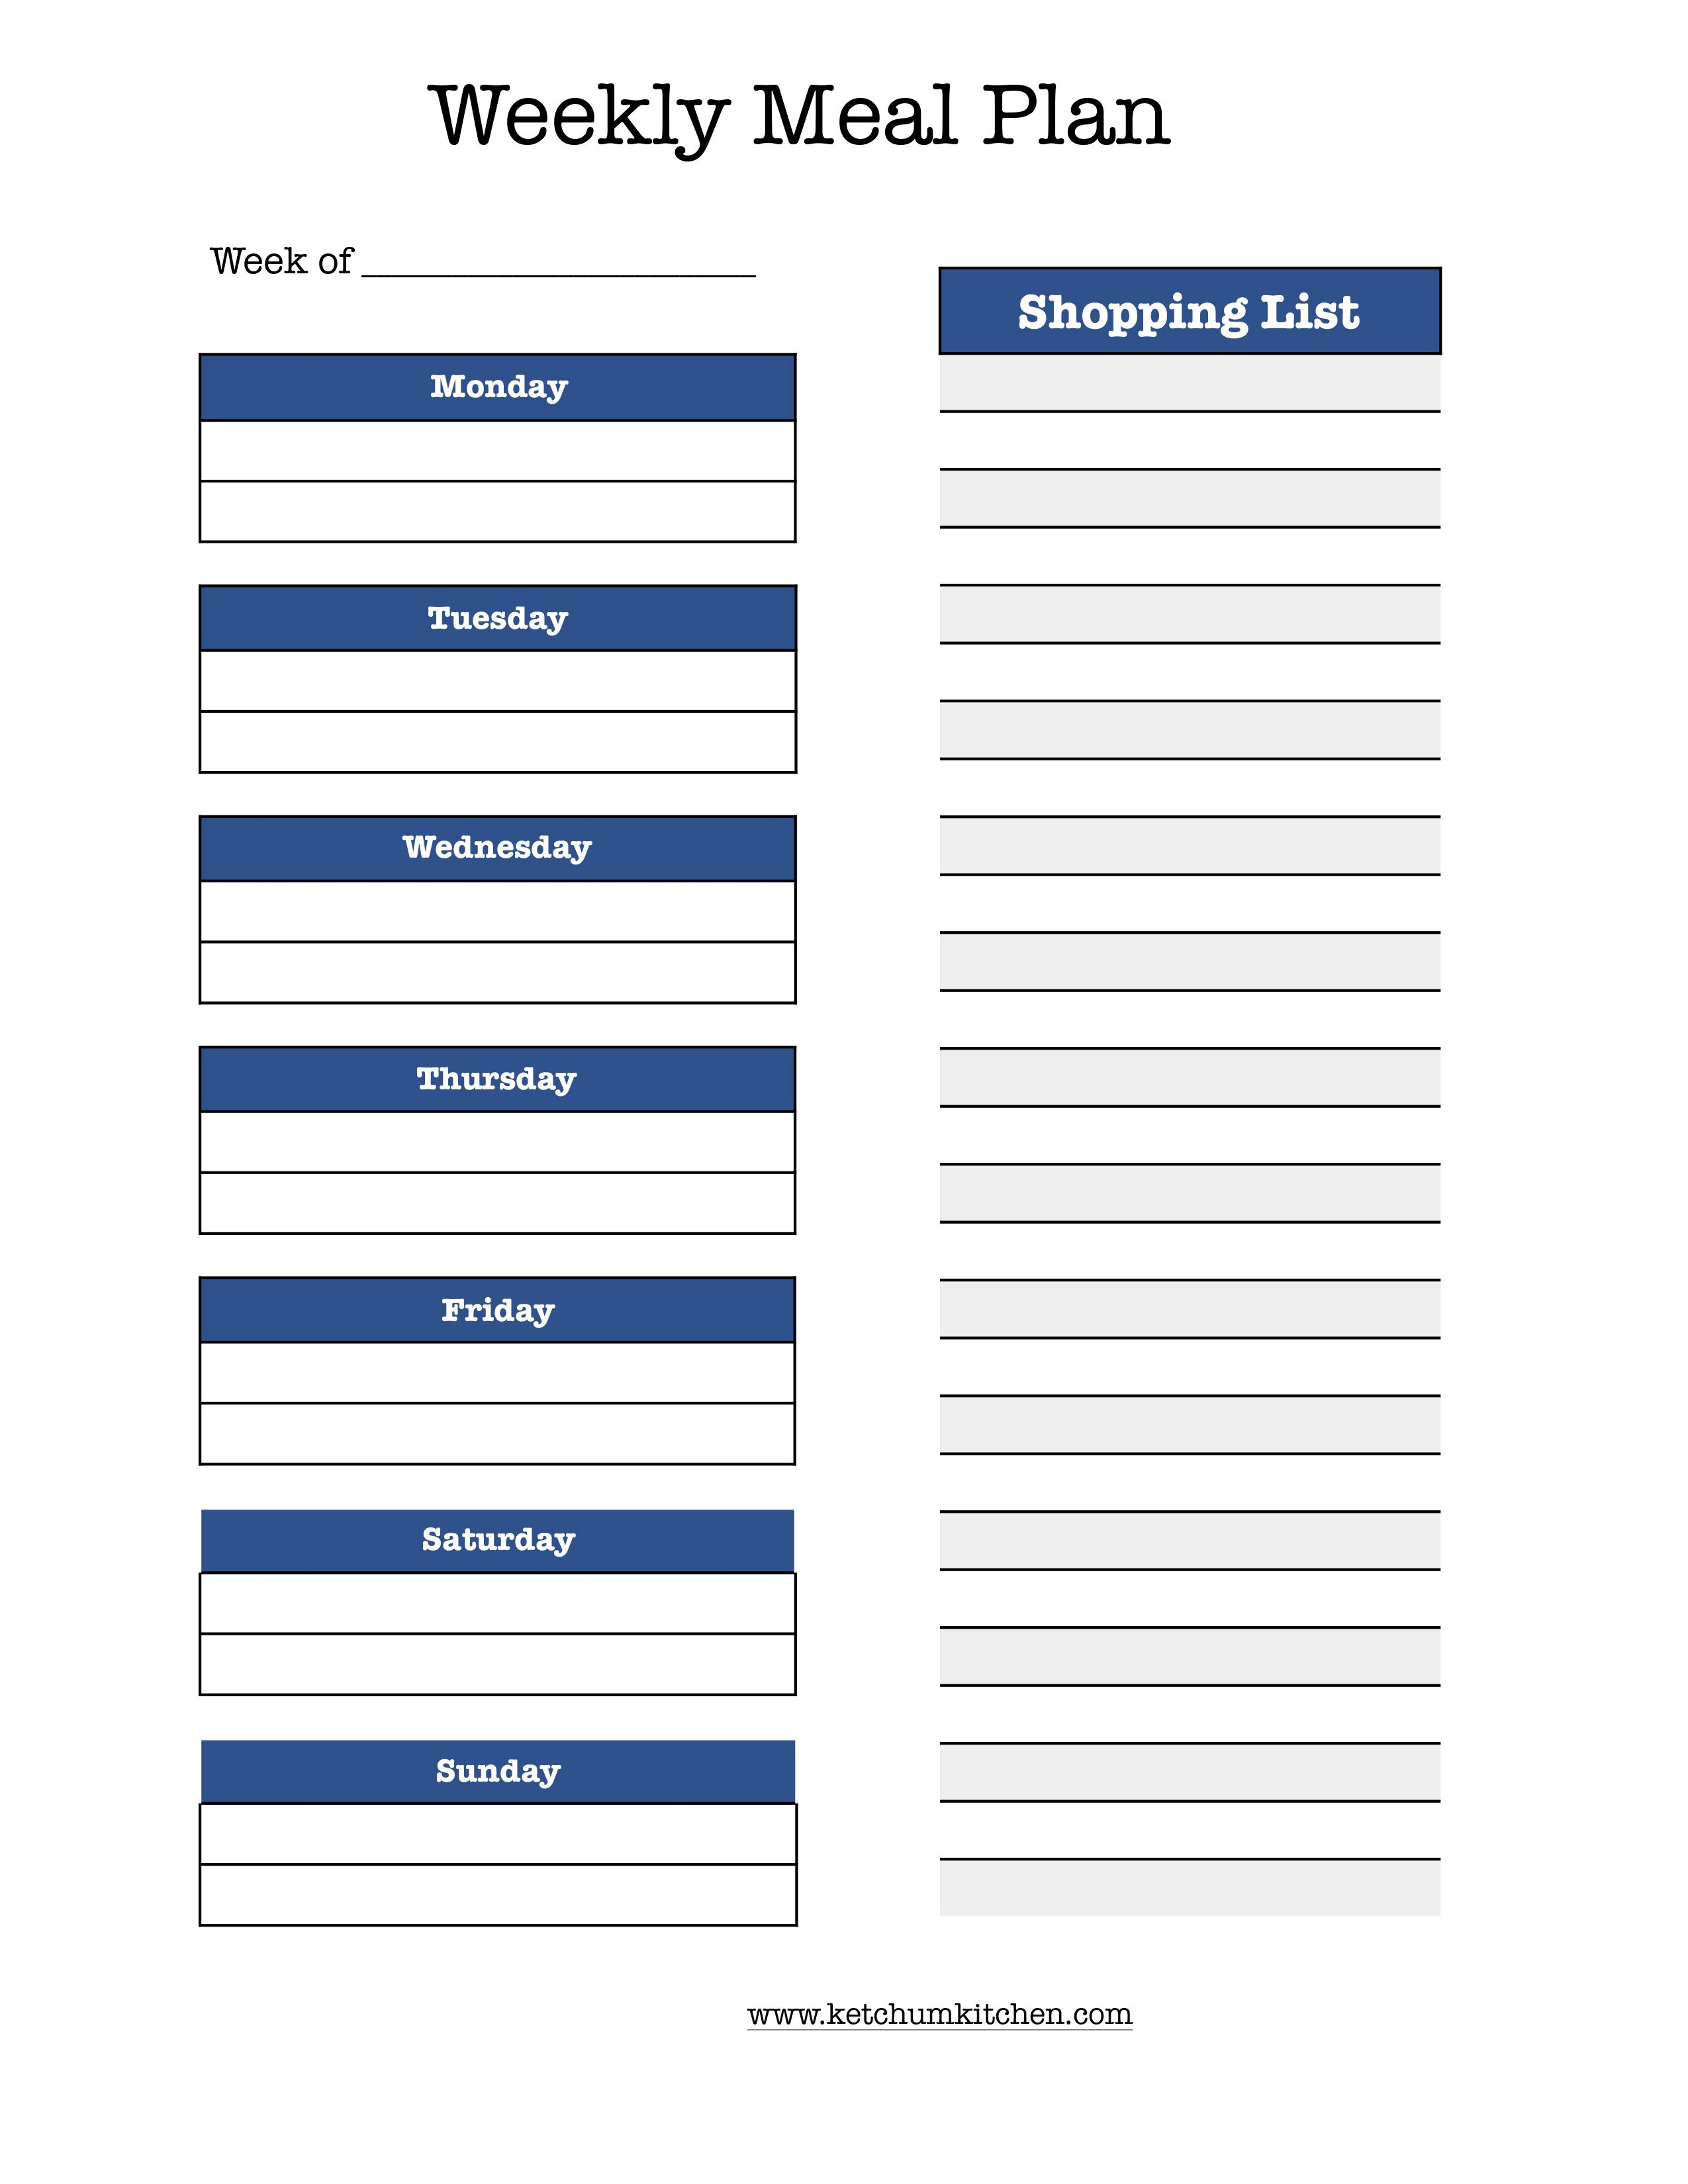 meal planning template with grocery list - printable weekly meal plan including shopping list meal